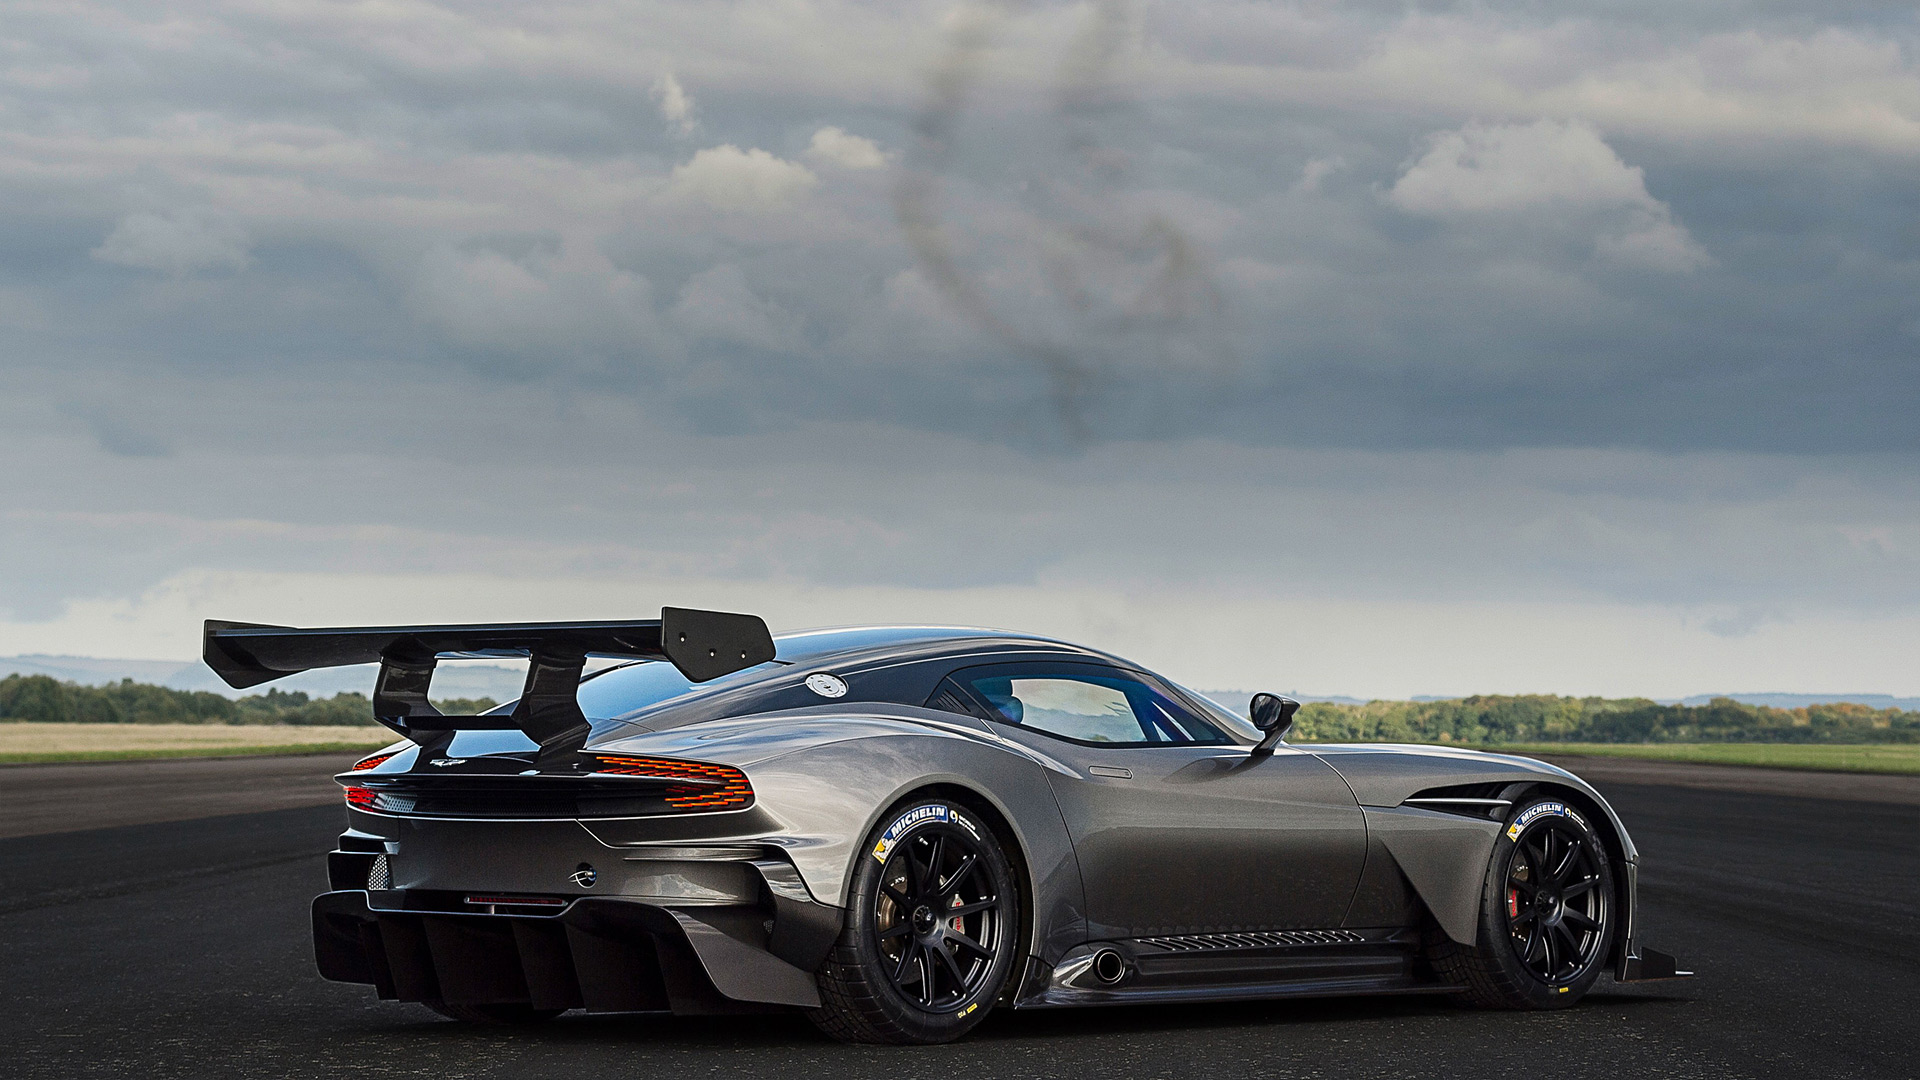 Aston Martin Vulcan Wallpaper Wallpapersafari